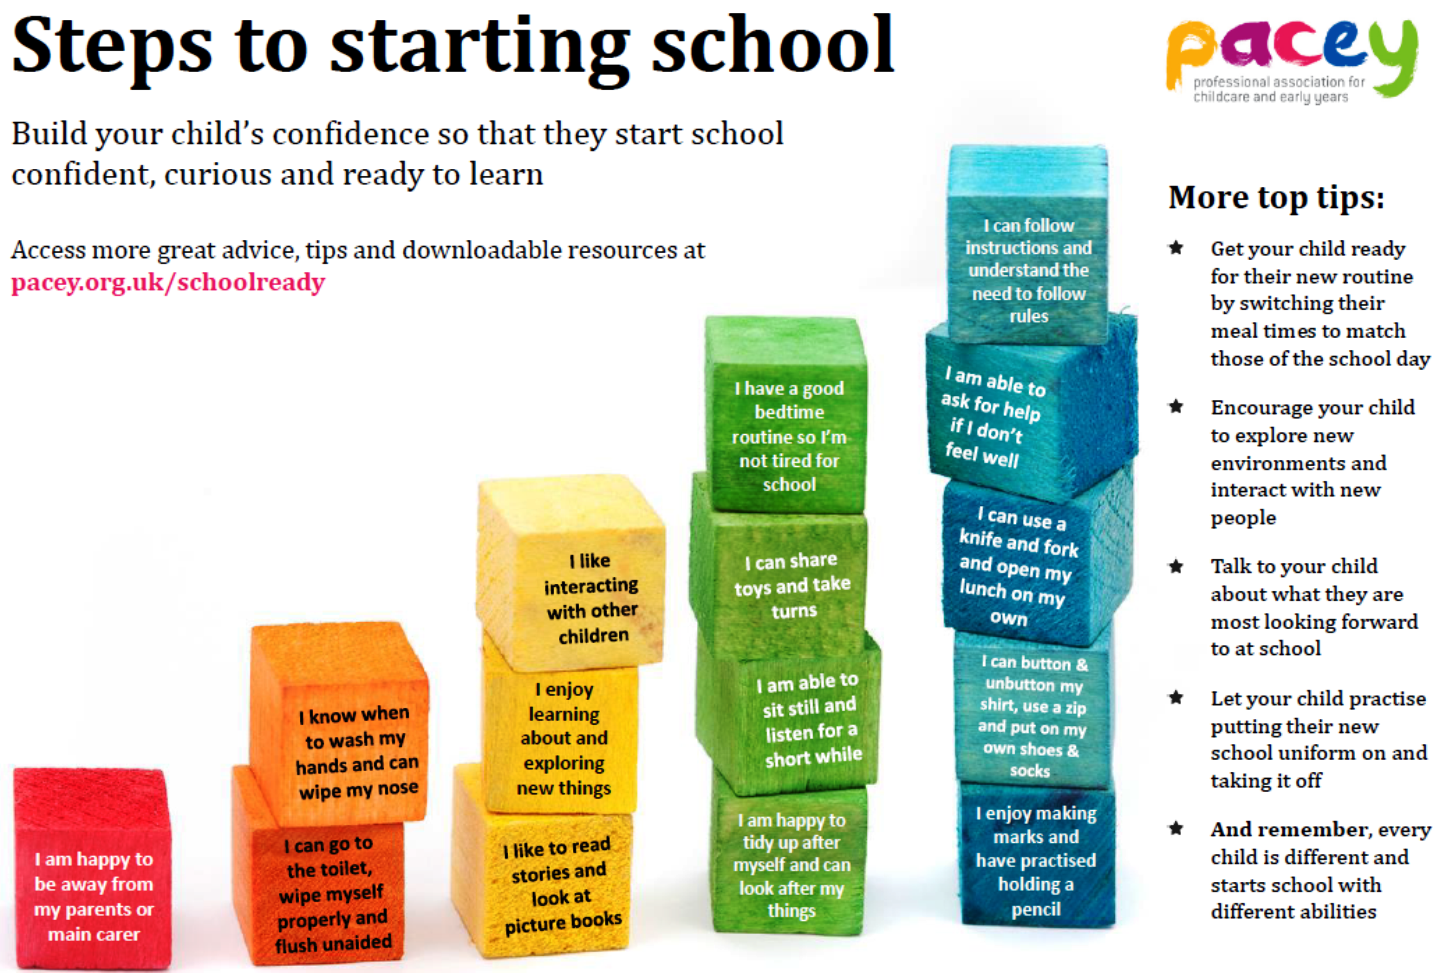 Build your child confidence to start school